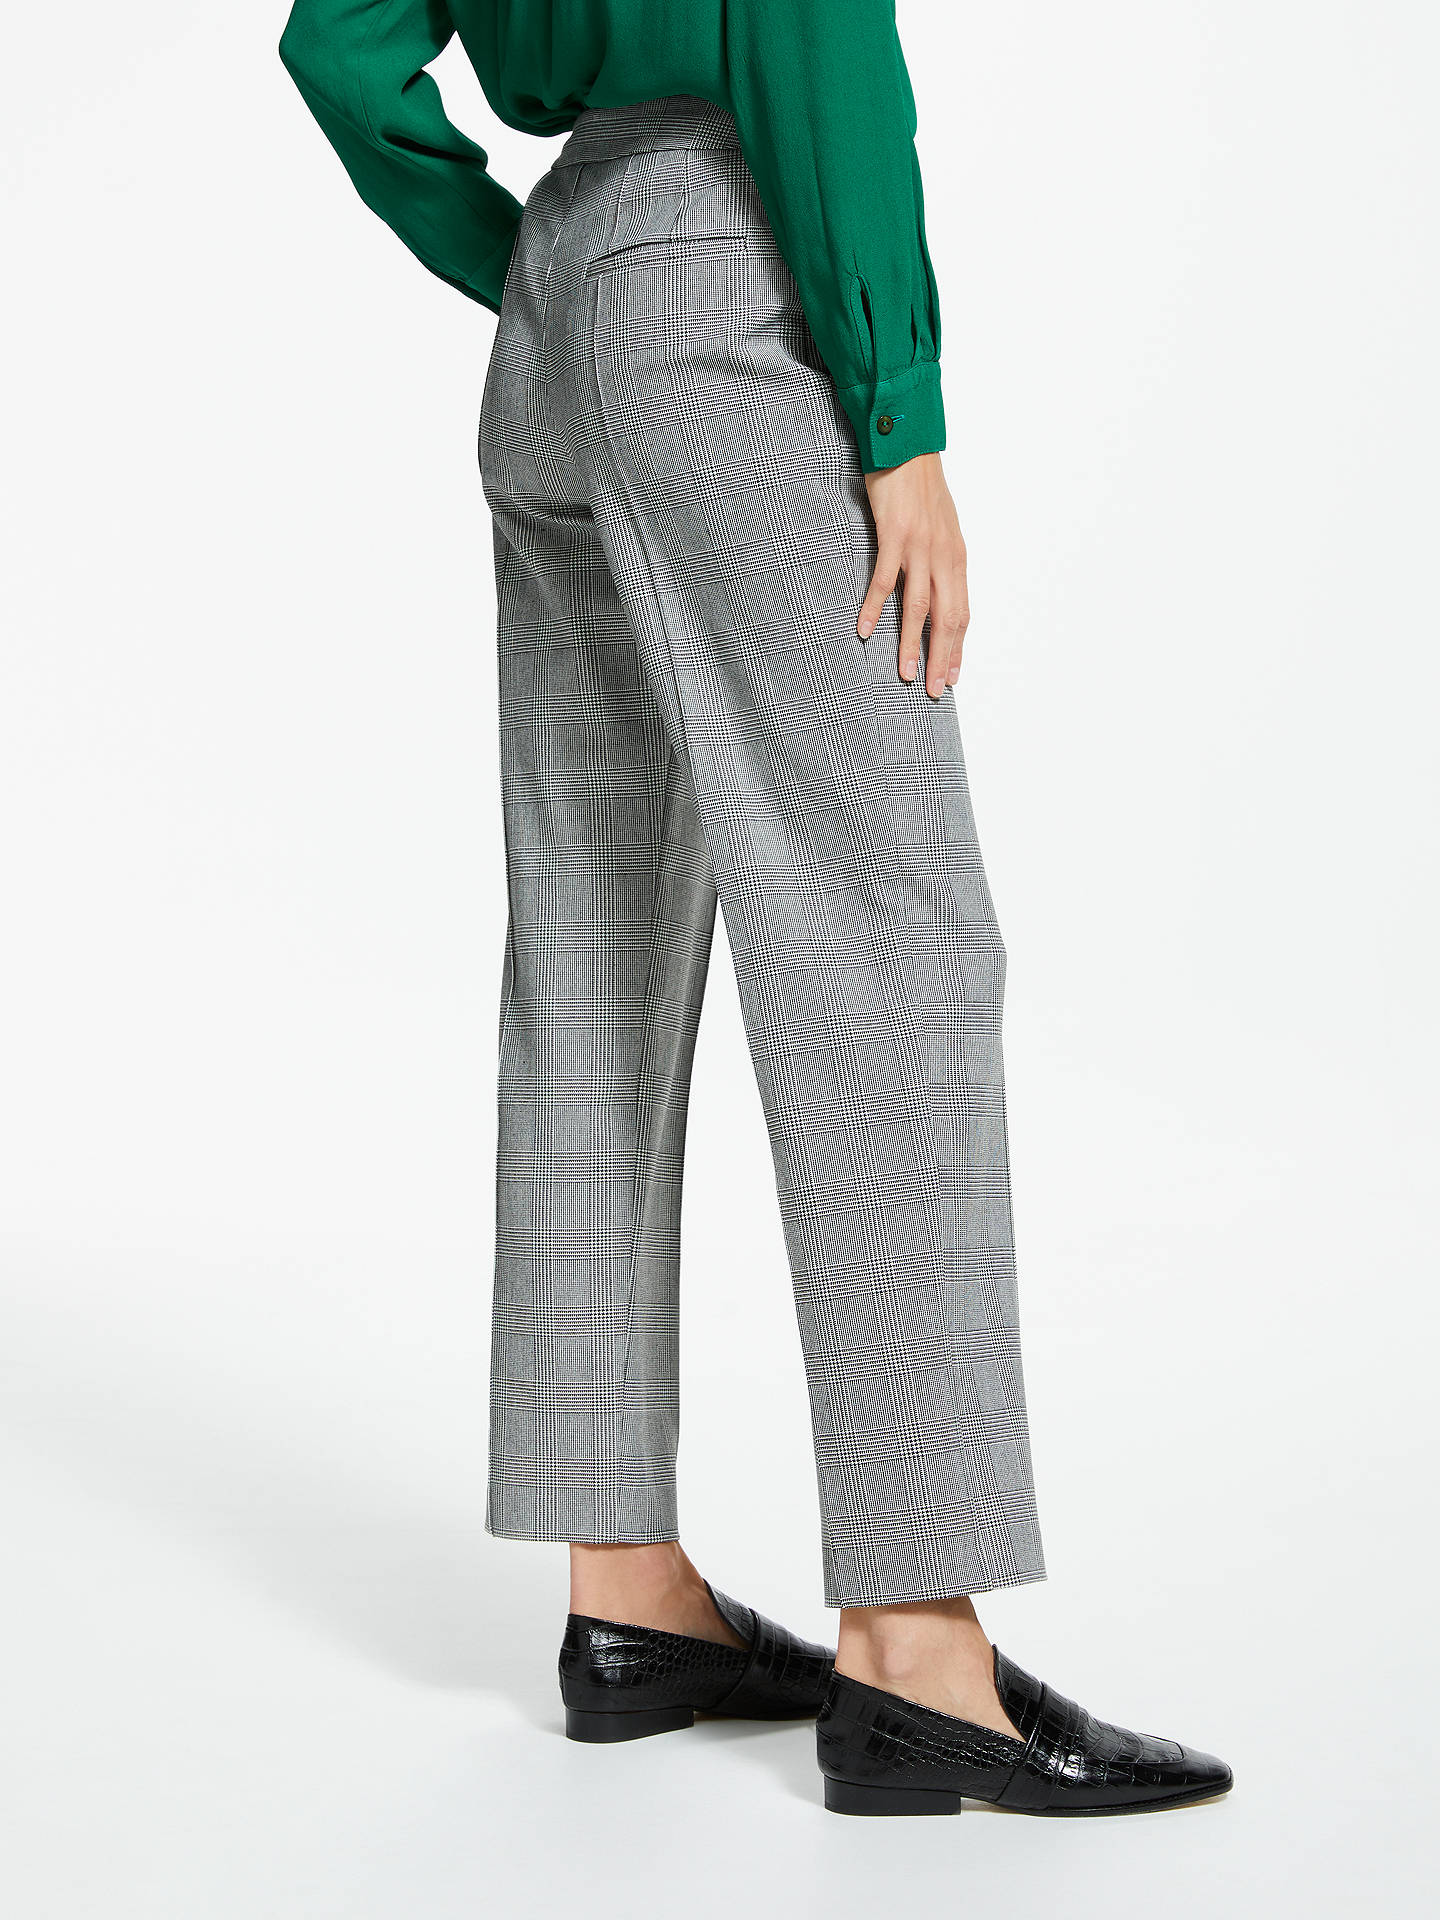 BuyFinery Aisha Trousers, Grey Multi, 8 Online at johnlewis.com